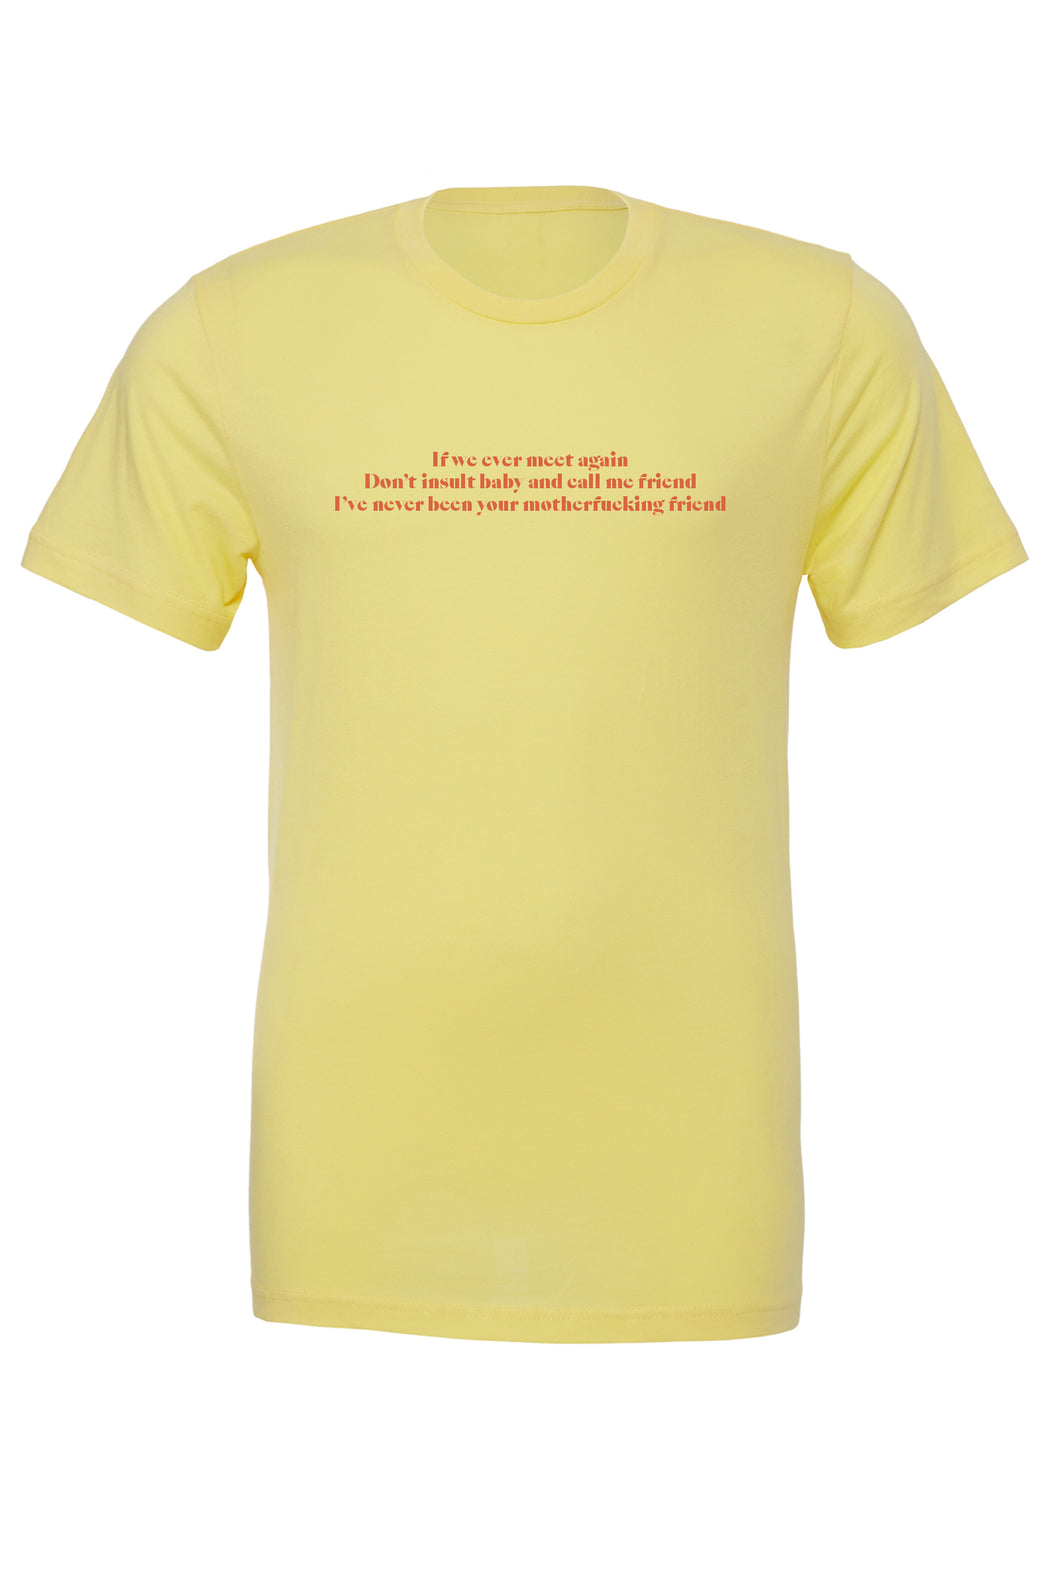 Geowulf Lyrics T-shirt